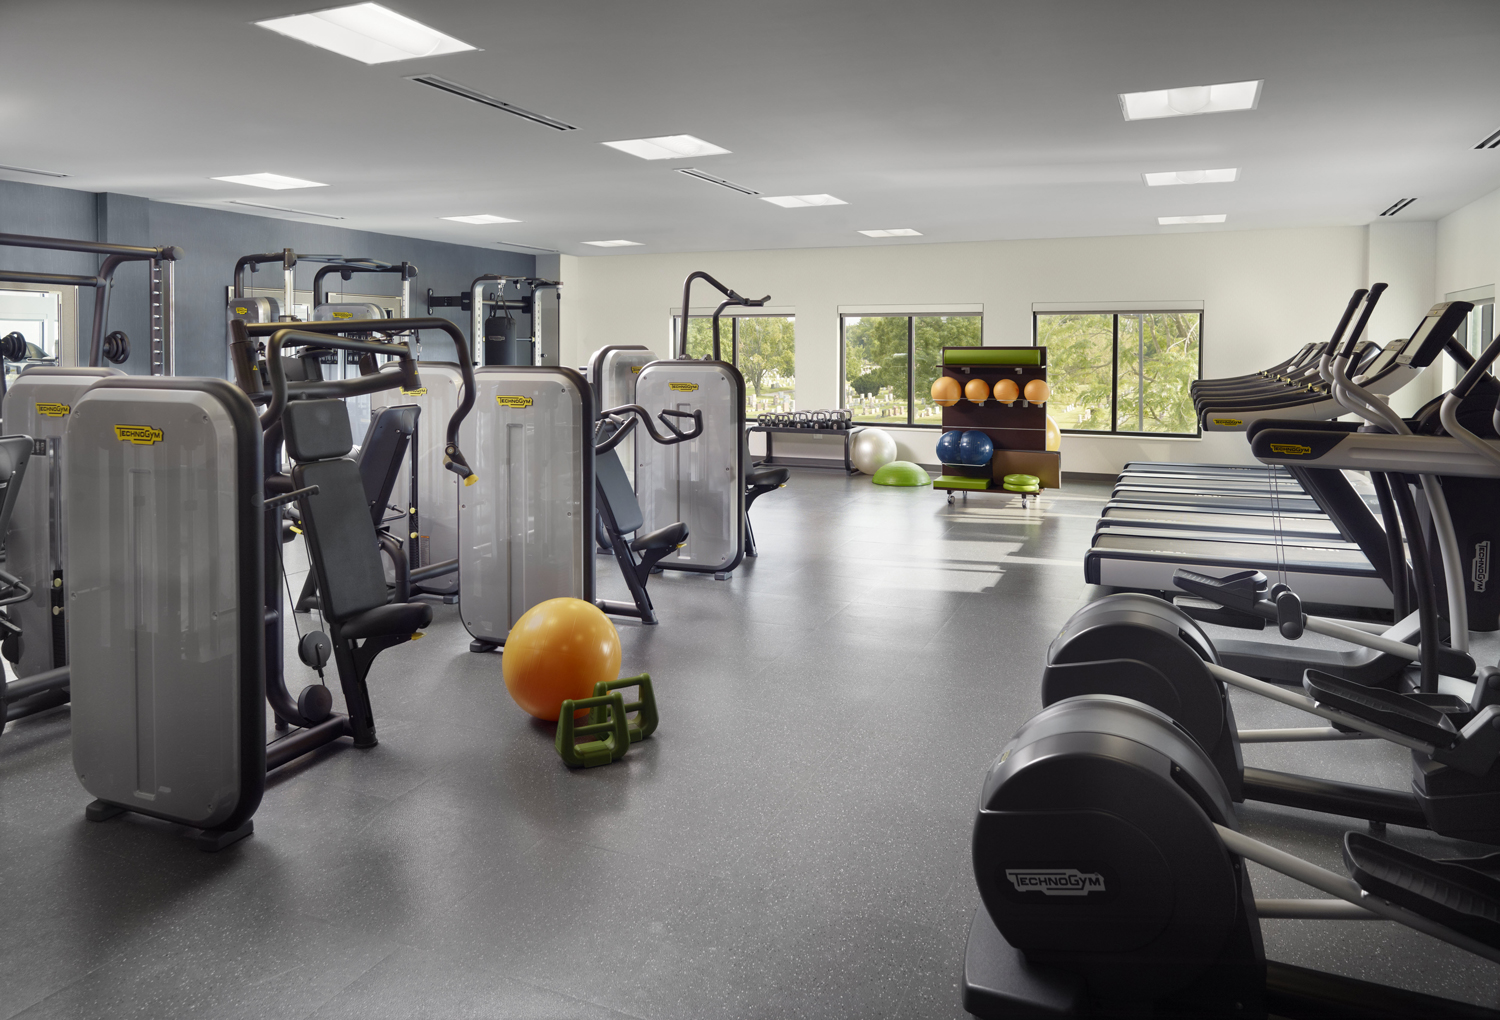 residence-inn-fitness-center.jpg